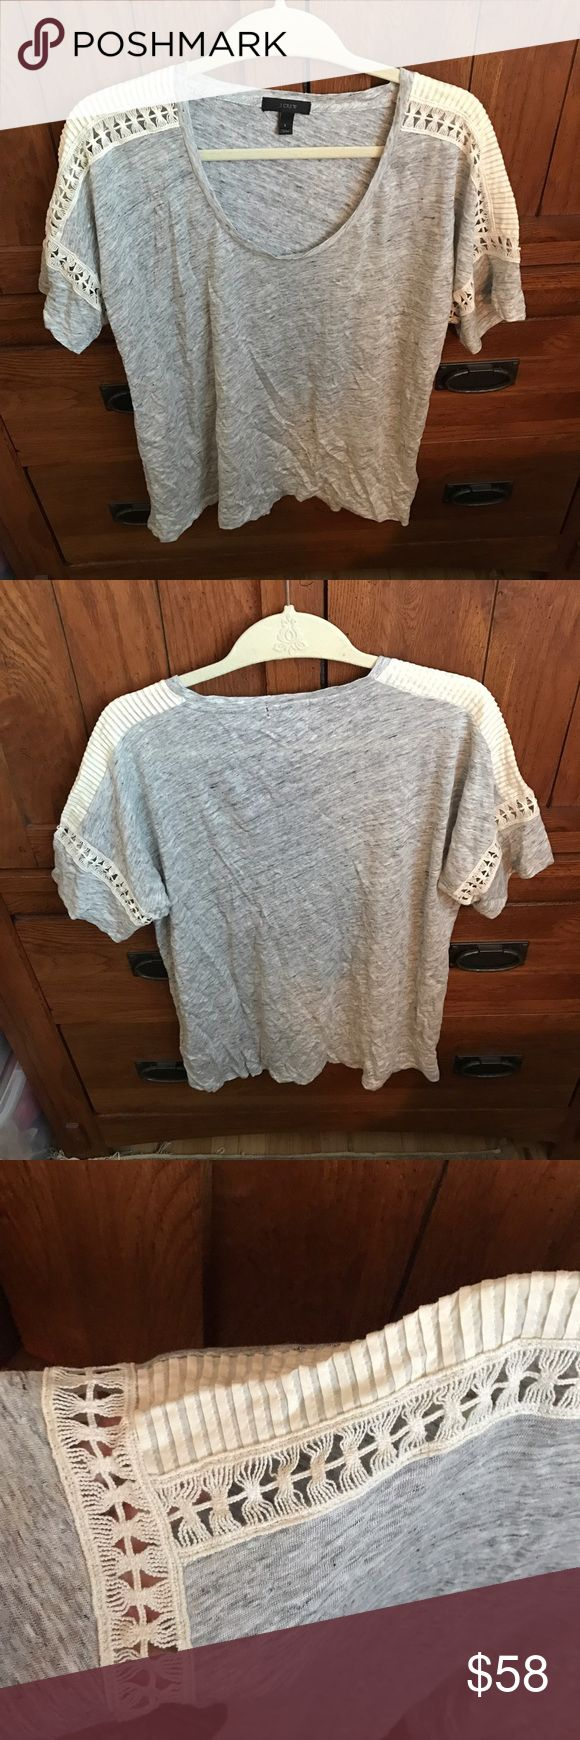 J. Crew Grey and Cream Crocheted Tee Worn once perfect condition. Comfortable and fun for summer! Make an offer :) J. Crew Tops Tees - Short Sleeve